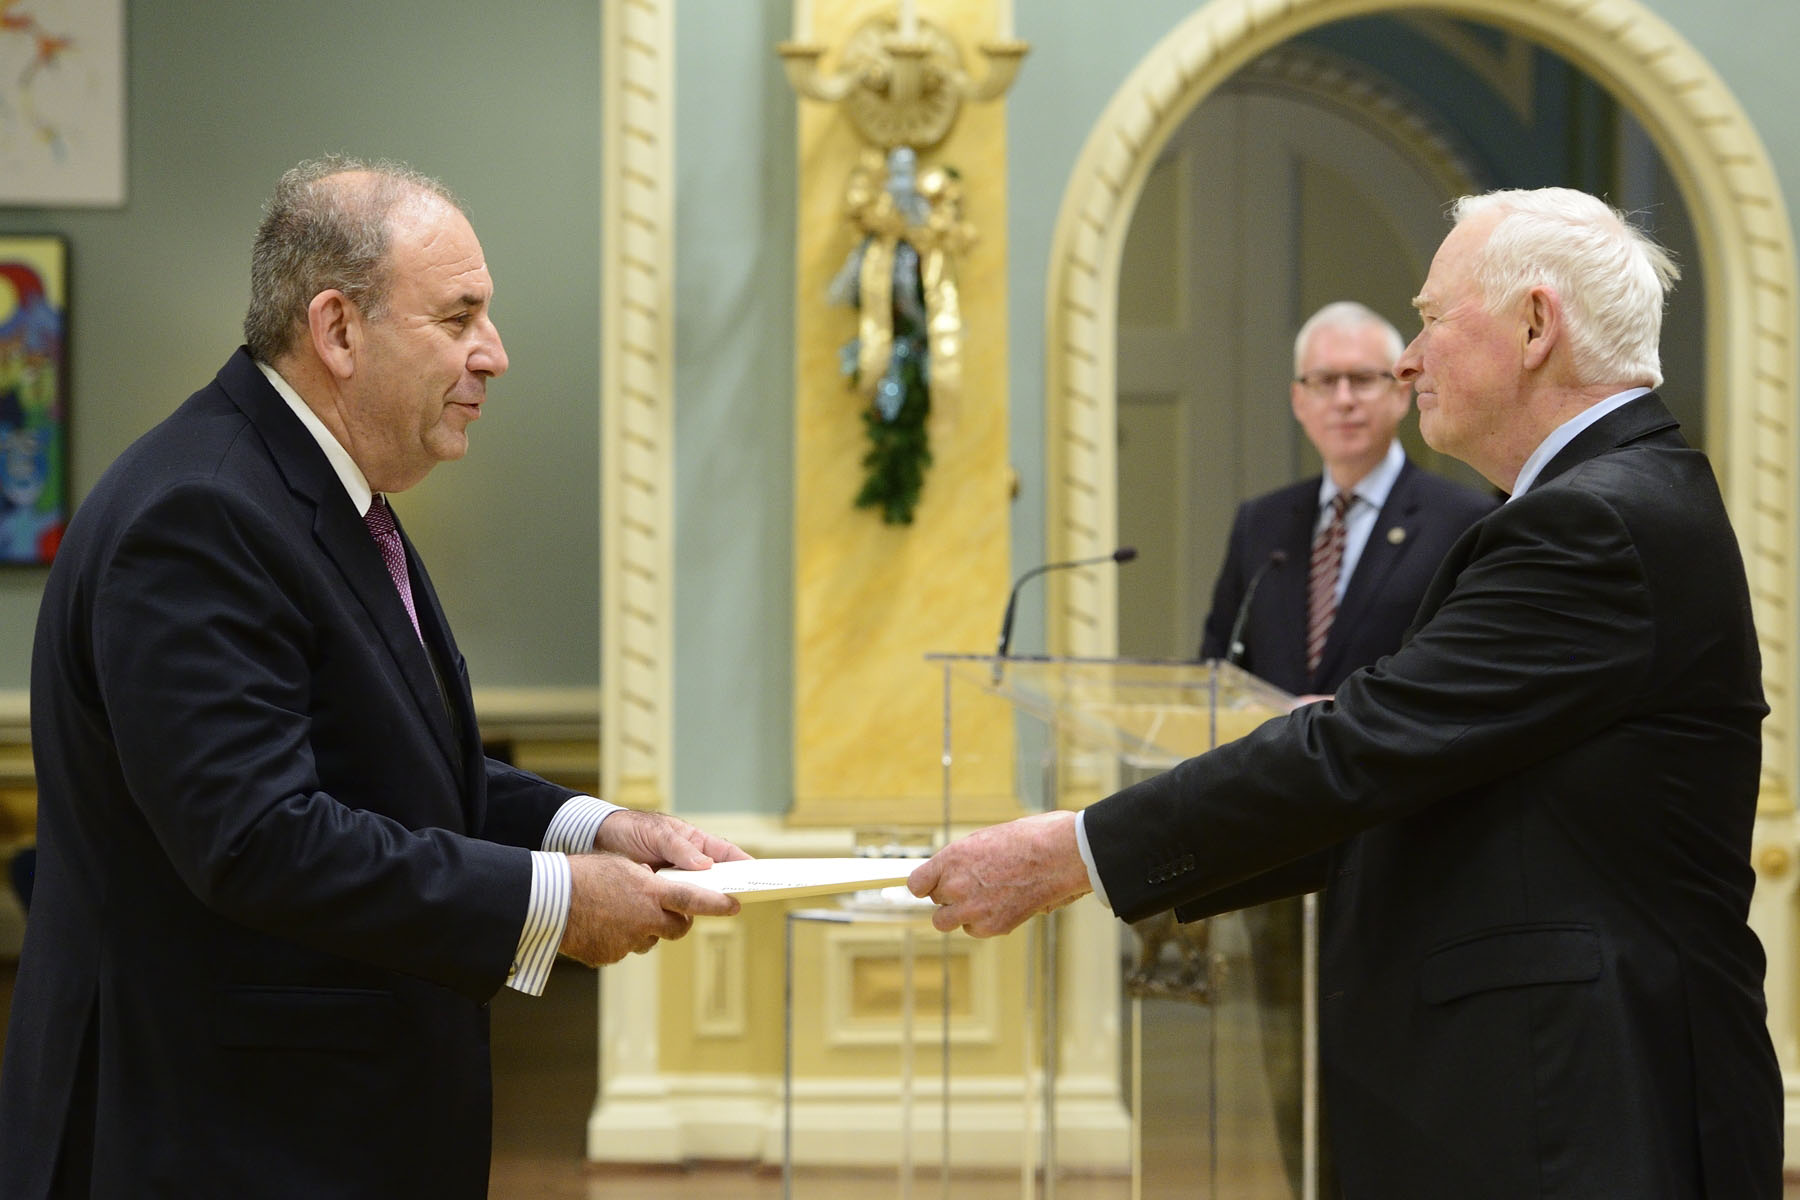 His Excellency Nimrod Barkan, Ambassador of the State of Israel was the first to present his letters of credence.